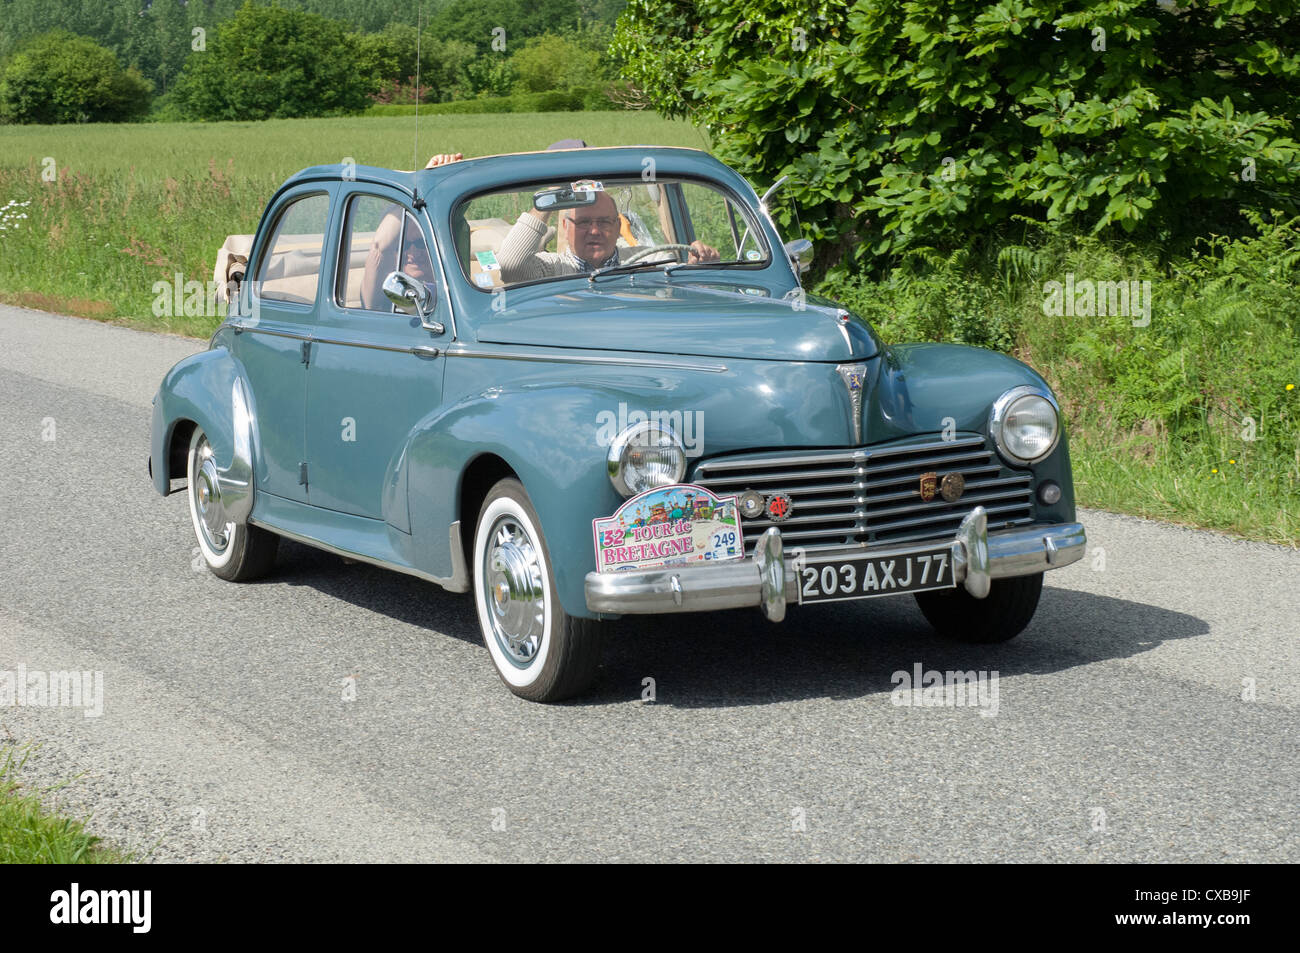 Peugeot 203 Luxe Decouvrable of 1955 in the Tour de Bretagne, France, 2012 - Stock Image